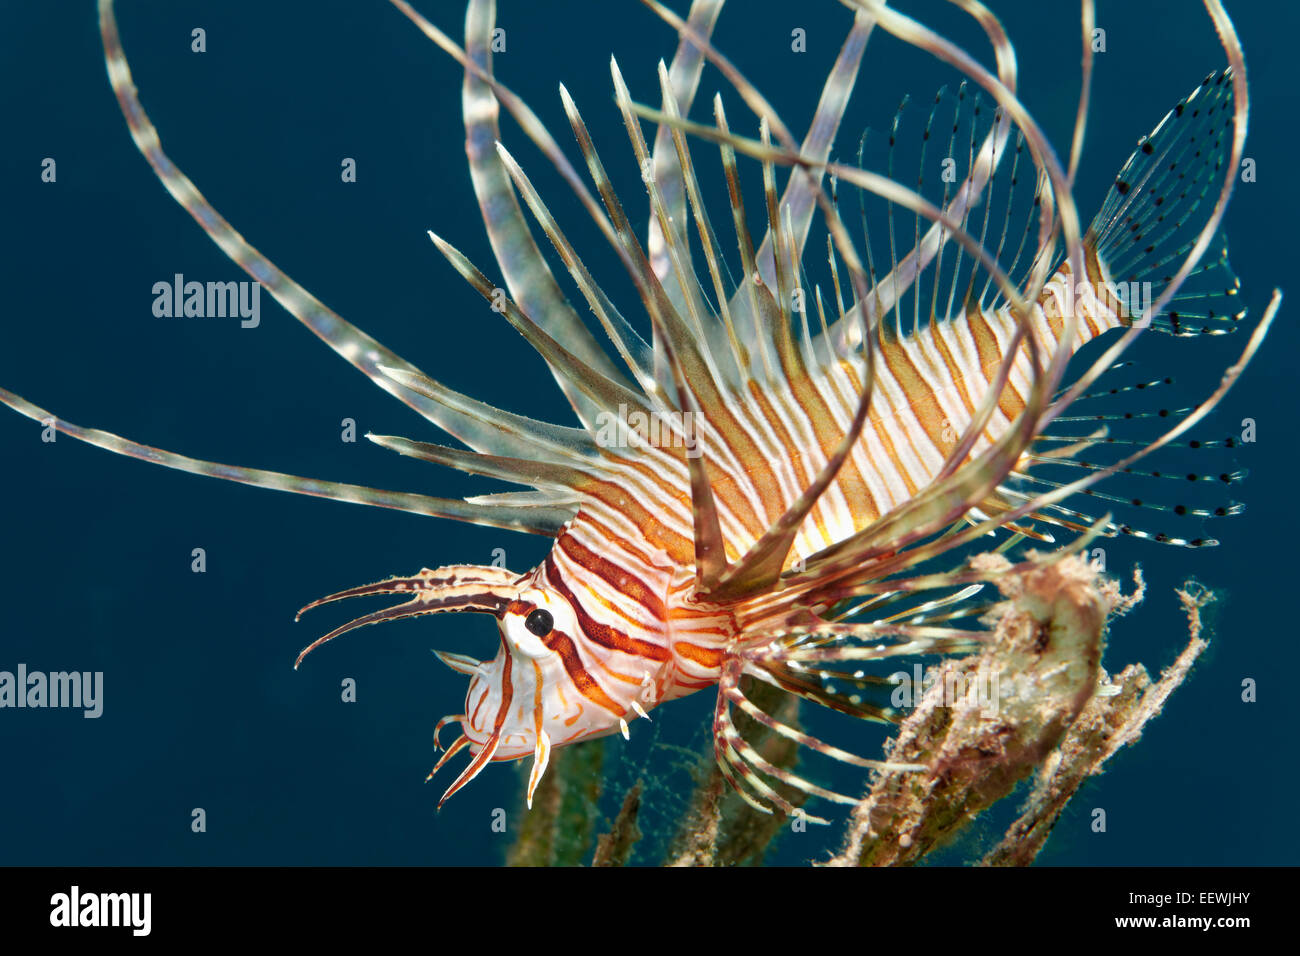 Poisson-papillon rouge (Pterois volitans), juvénile, Jordanie Photo Stock